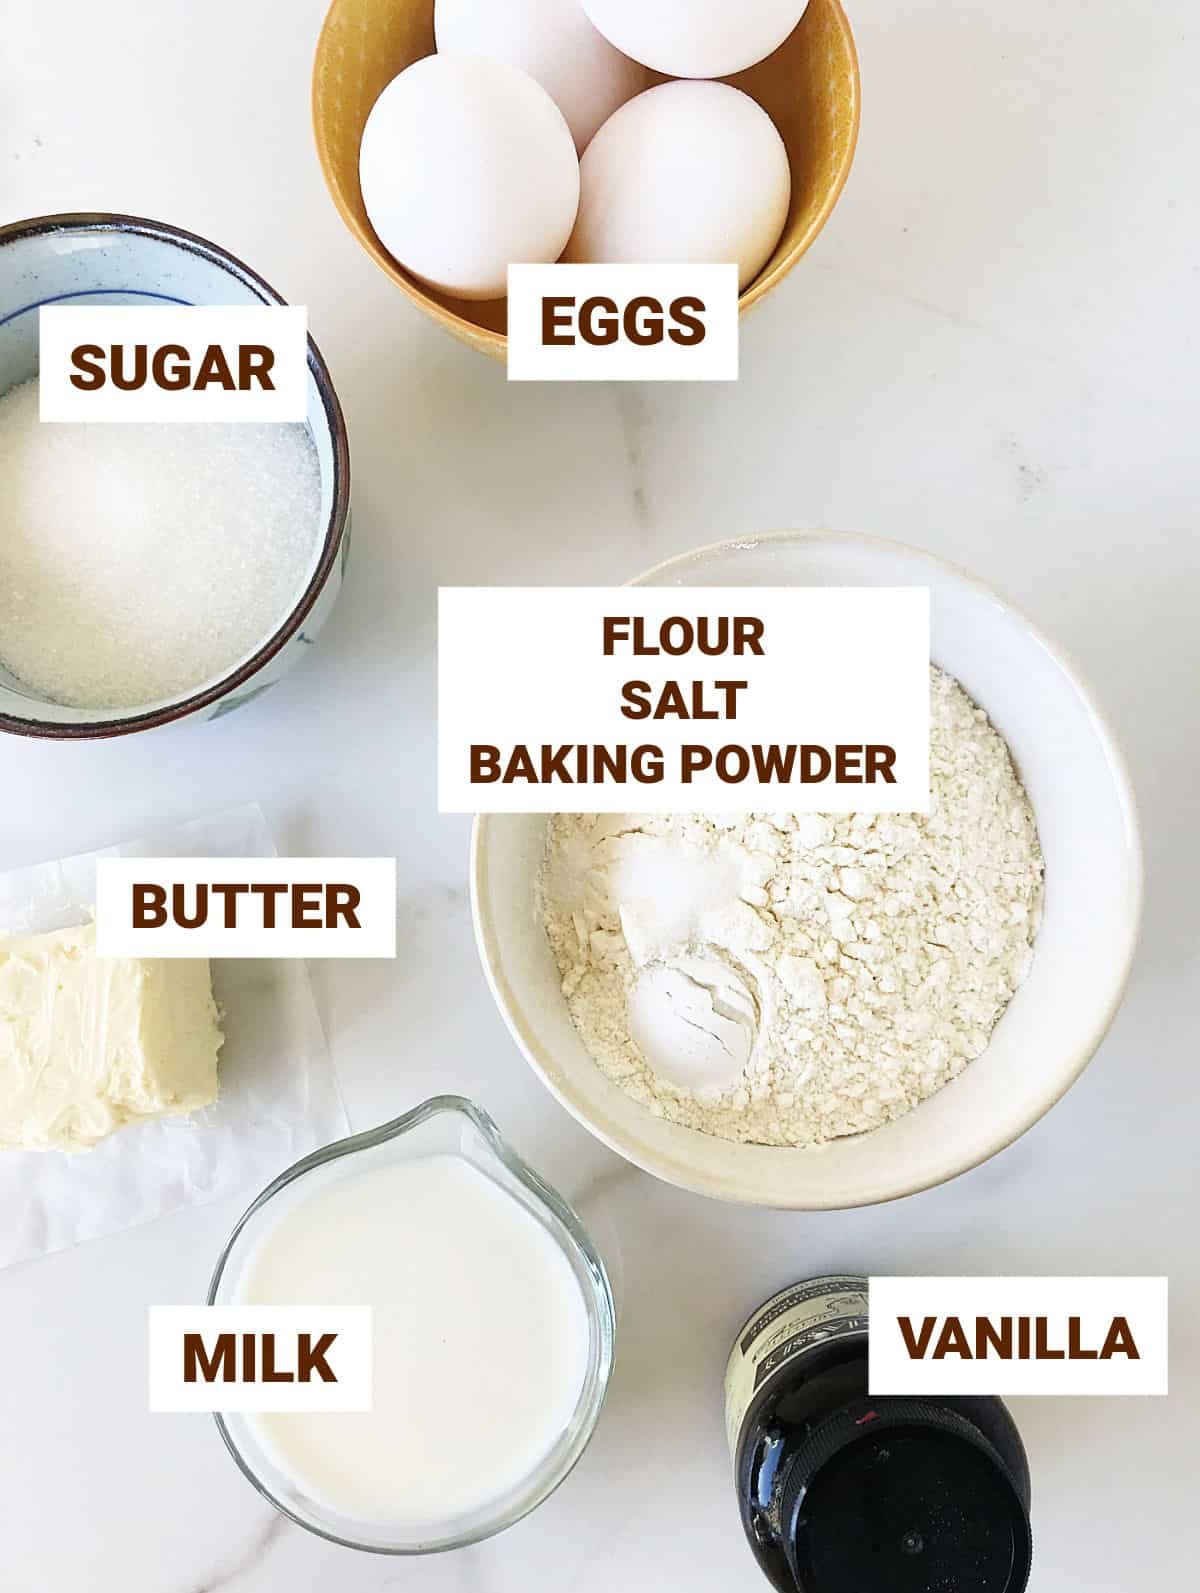 Different bowl with shortcake cupcake ingredients including eggs, butter, milk, vanilla bottle